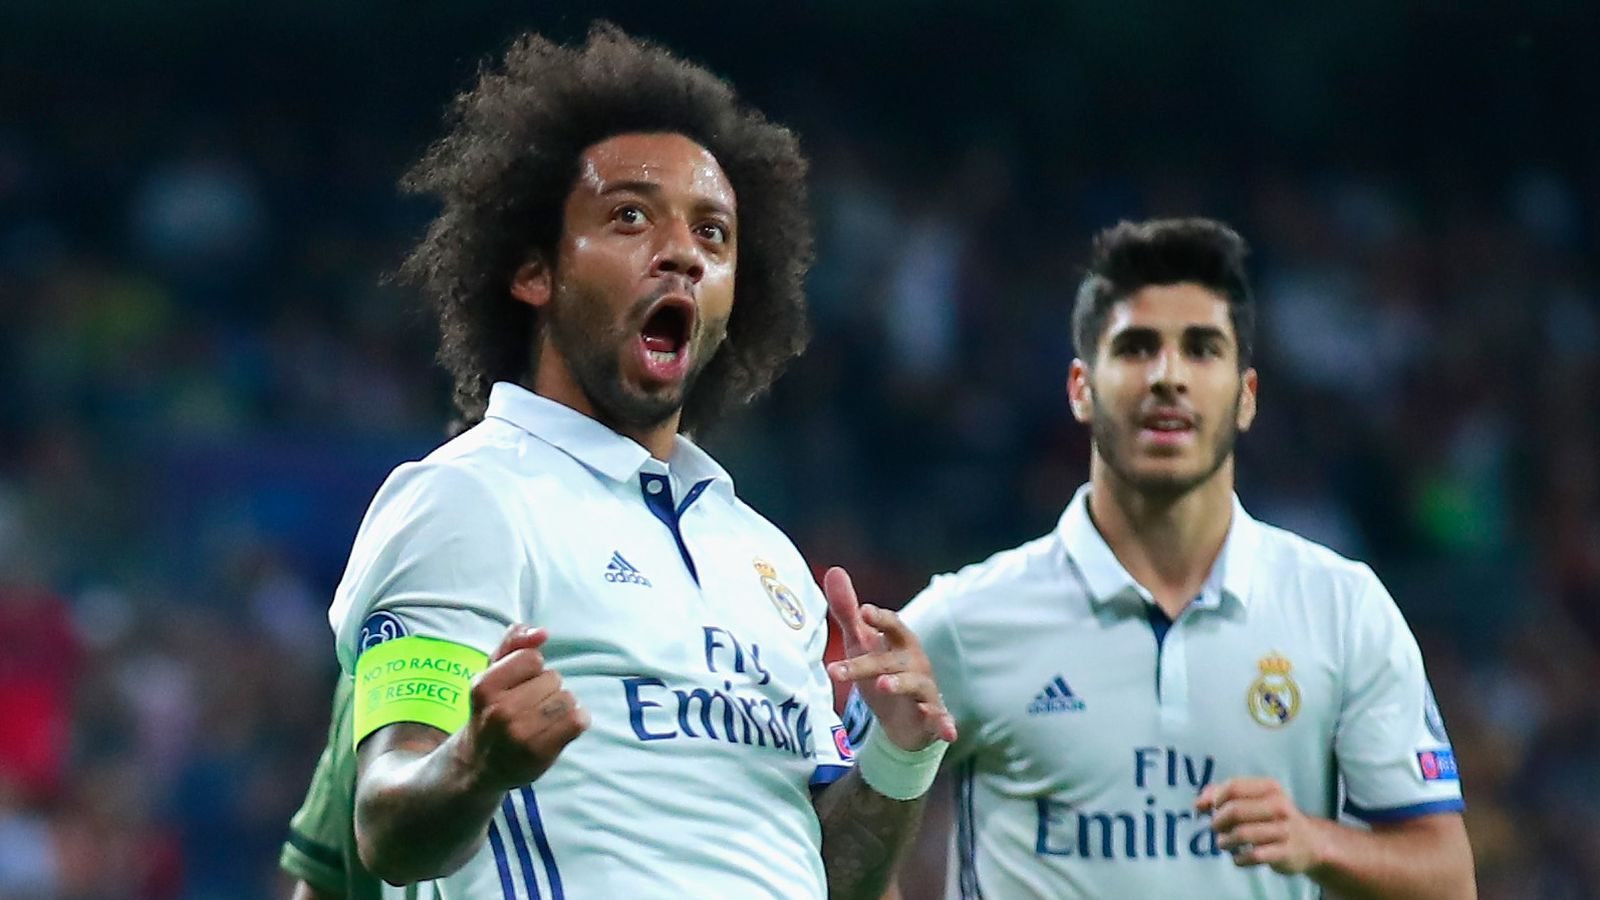 Managing Madrid A Real Madrid Community: Analyzing Marcelo's Importance For Real Madrid